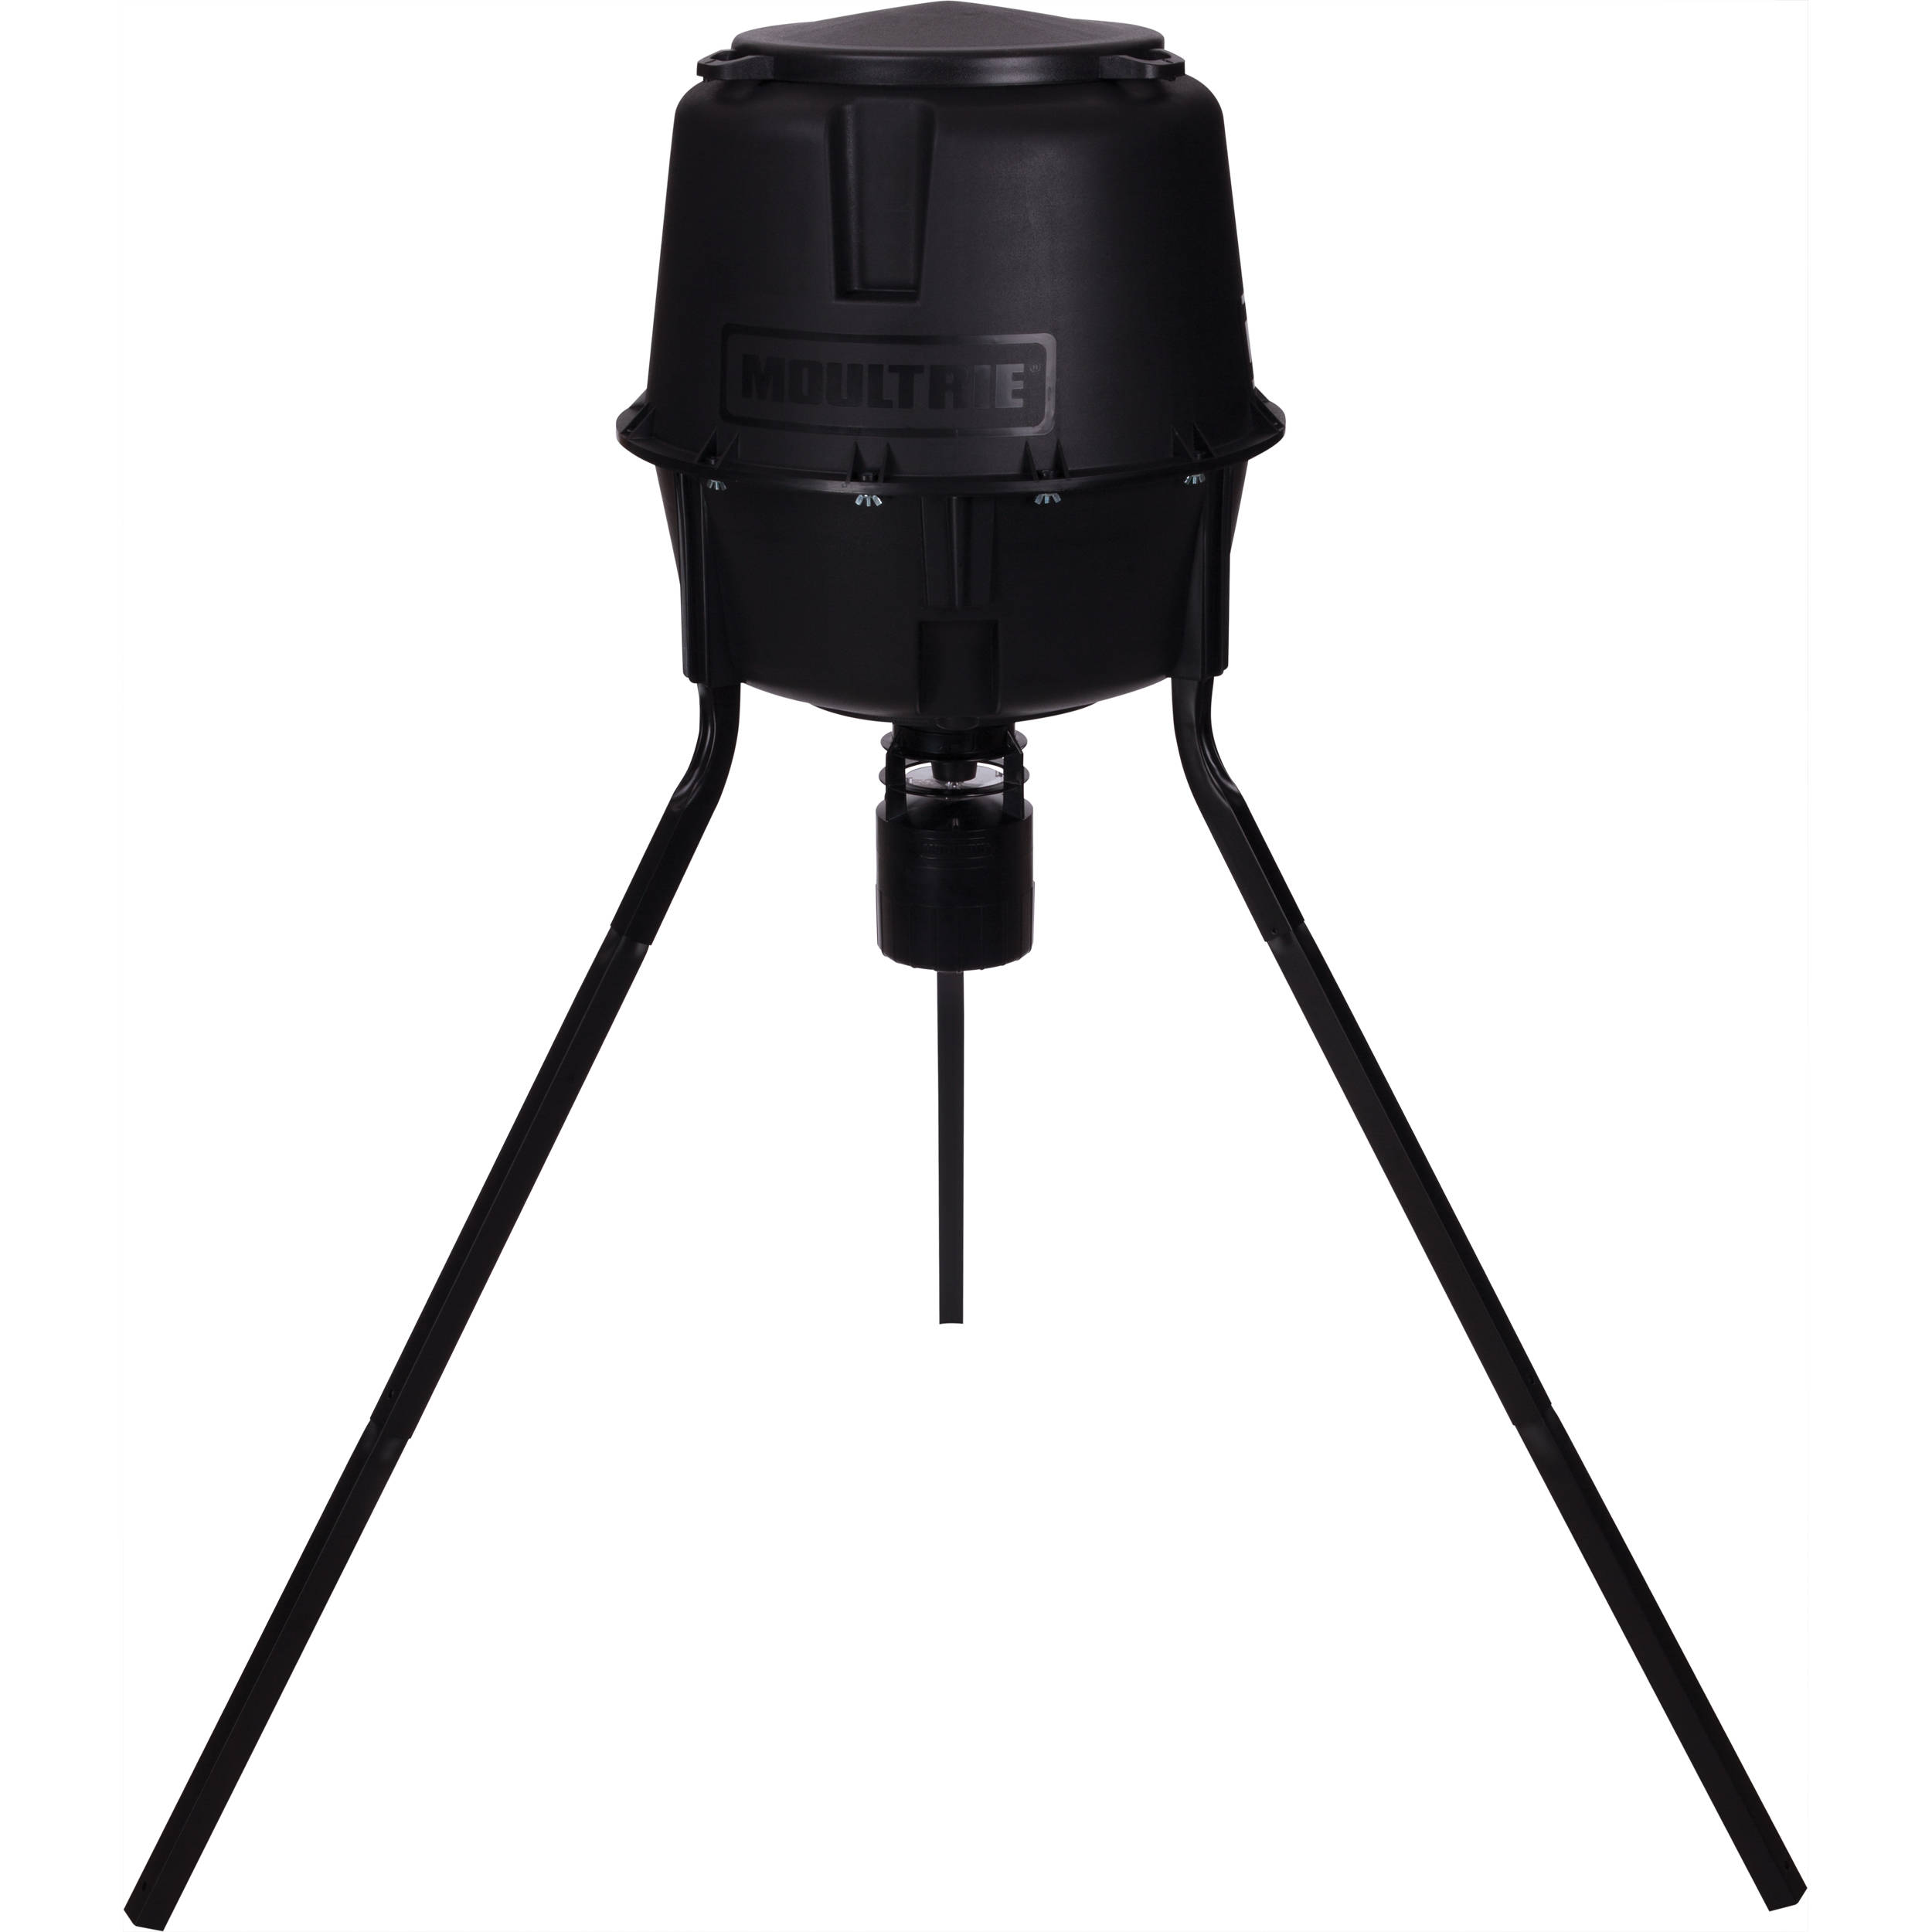 feeder funnel outdoors deer com sports for gallon dp moultrie internal feeders amazon